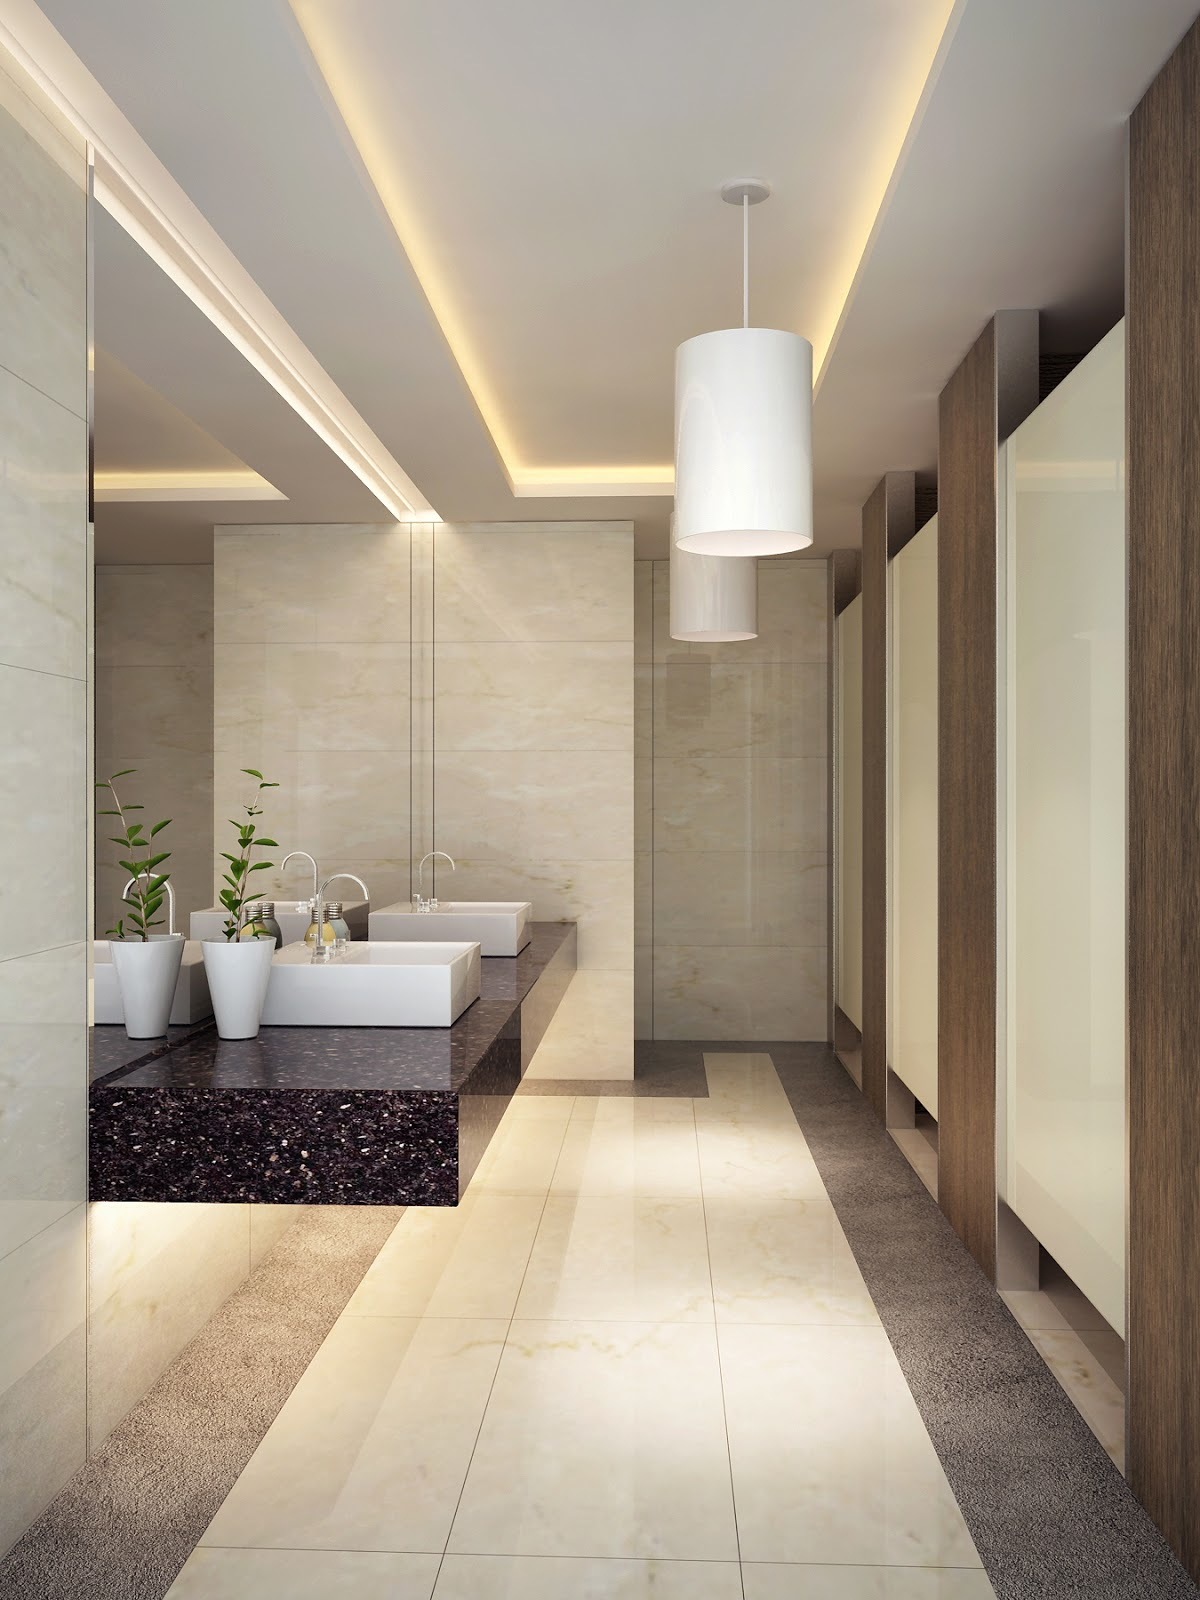 ROYAL HOTEL Interior Design Renovation Works Lobby Lounge Toilet